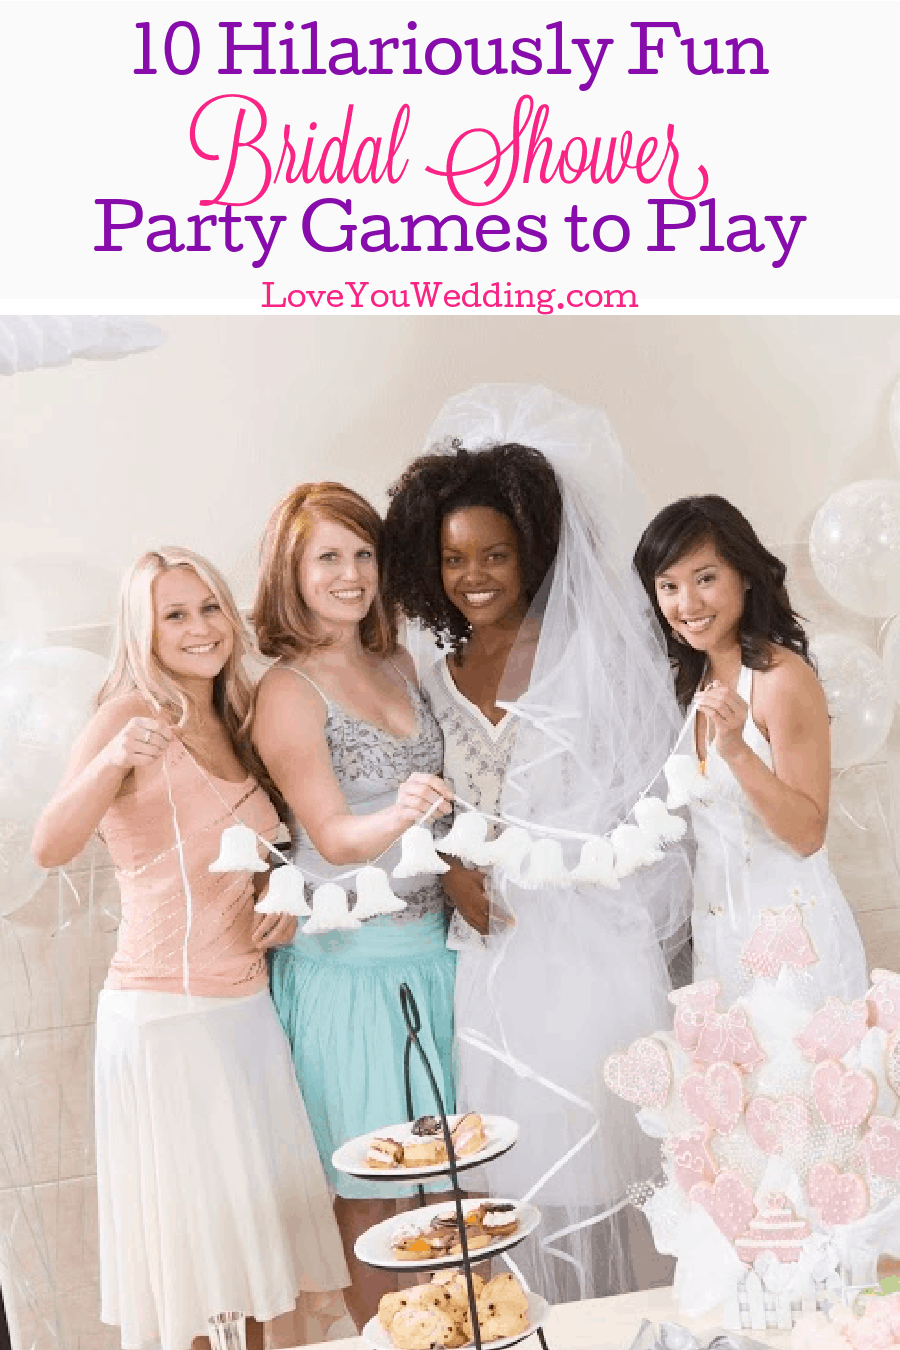 These hilarious bridal shower games will have your guests cracking up and ROFL! Most of them use items you have on hand, too! Check them out!